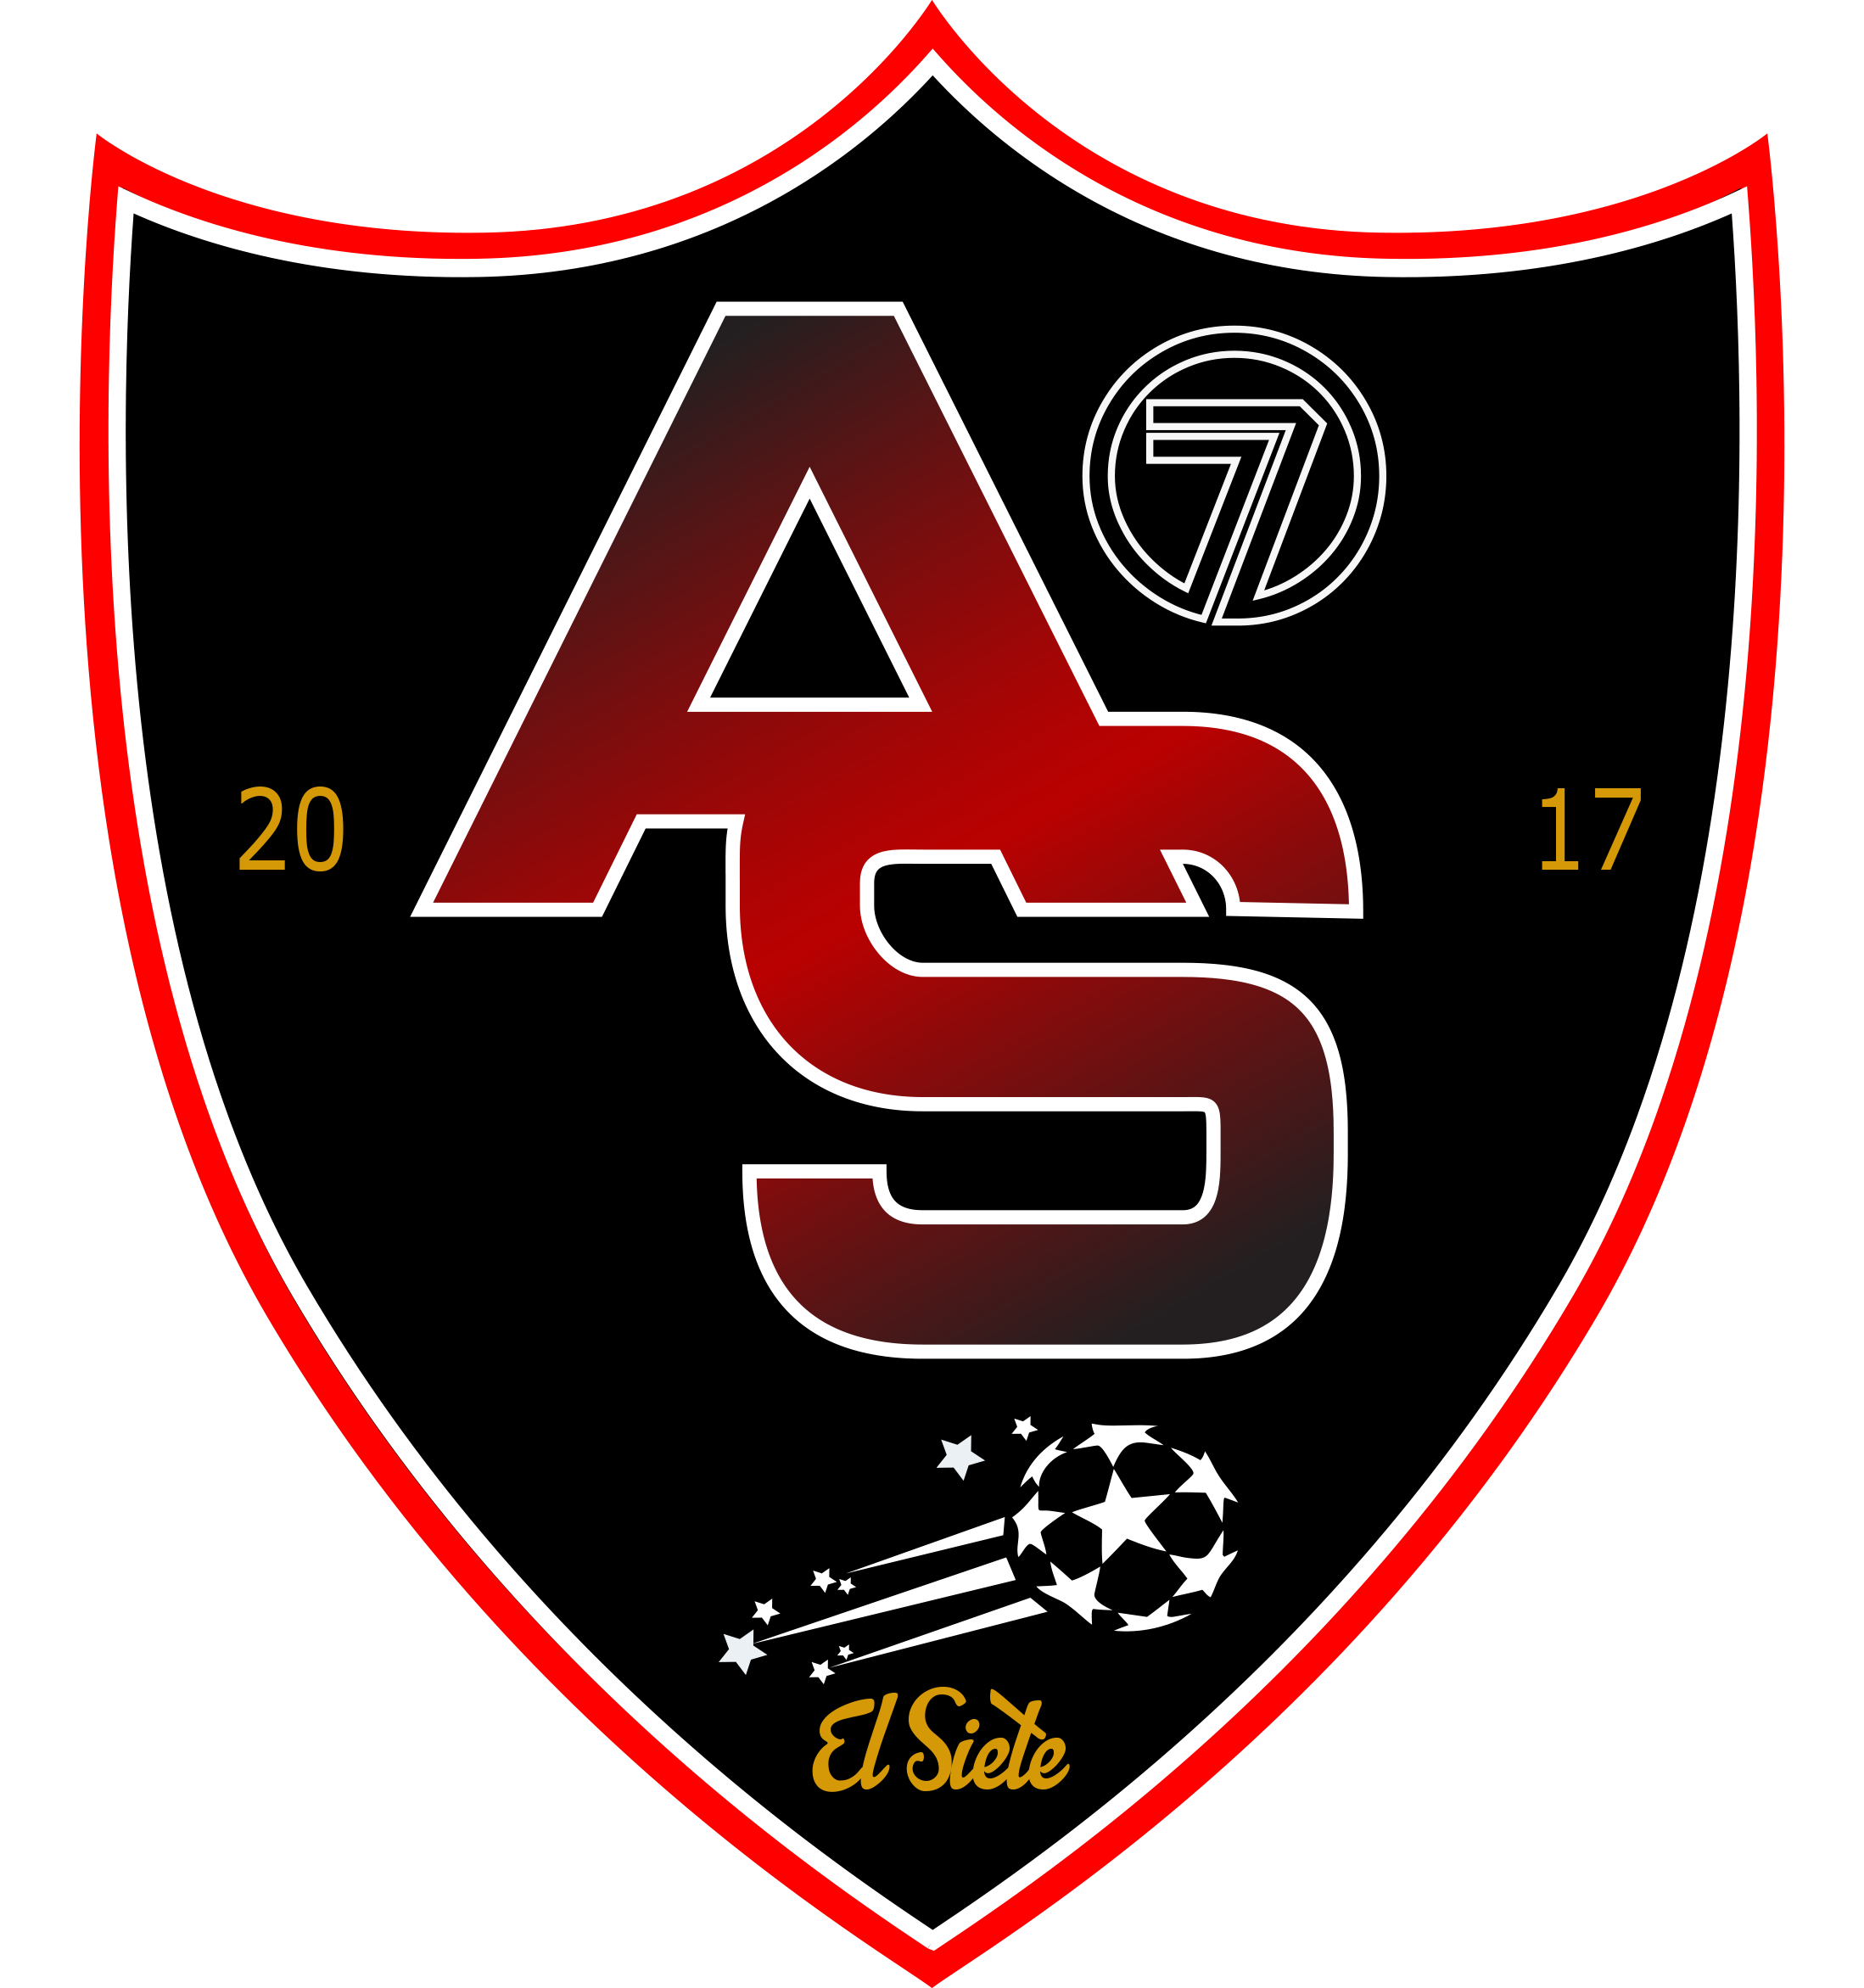 Logo Association El Siete